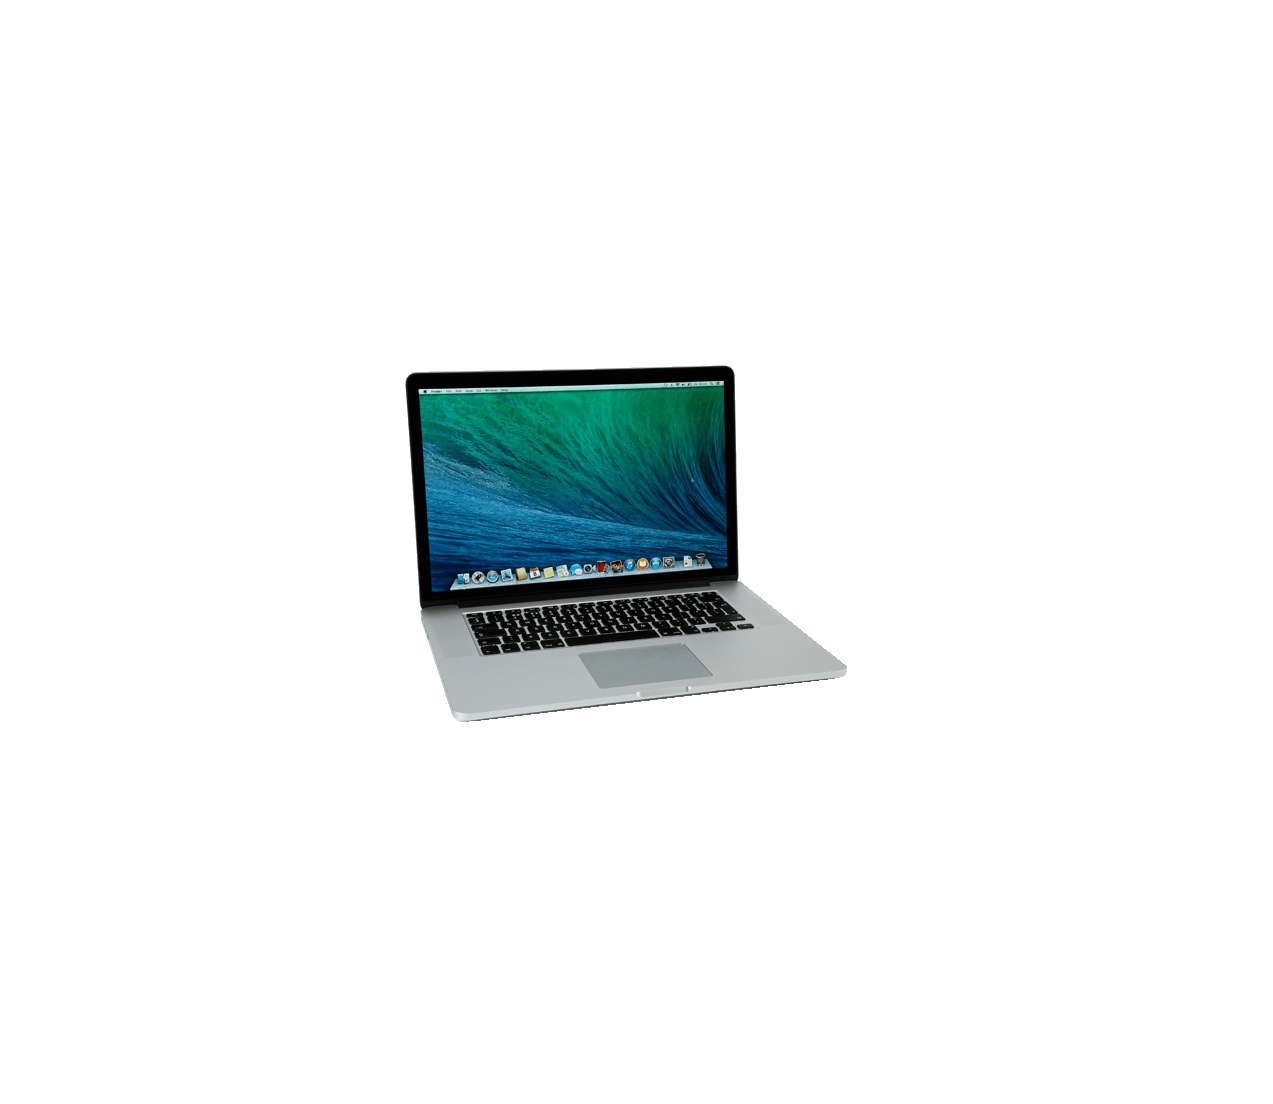 2015 15 inch macbook pro with retina display laptop review sellbroke. Black Bedroom Furniture Sets. Home Design Ideas